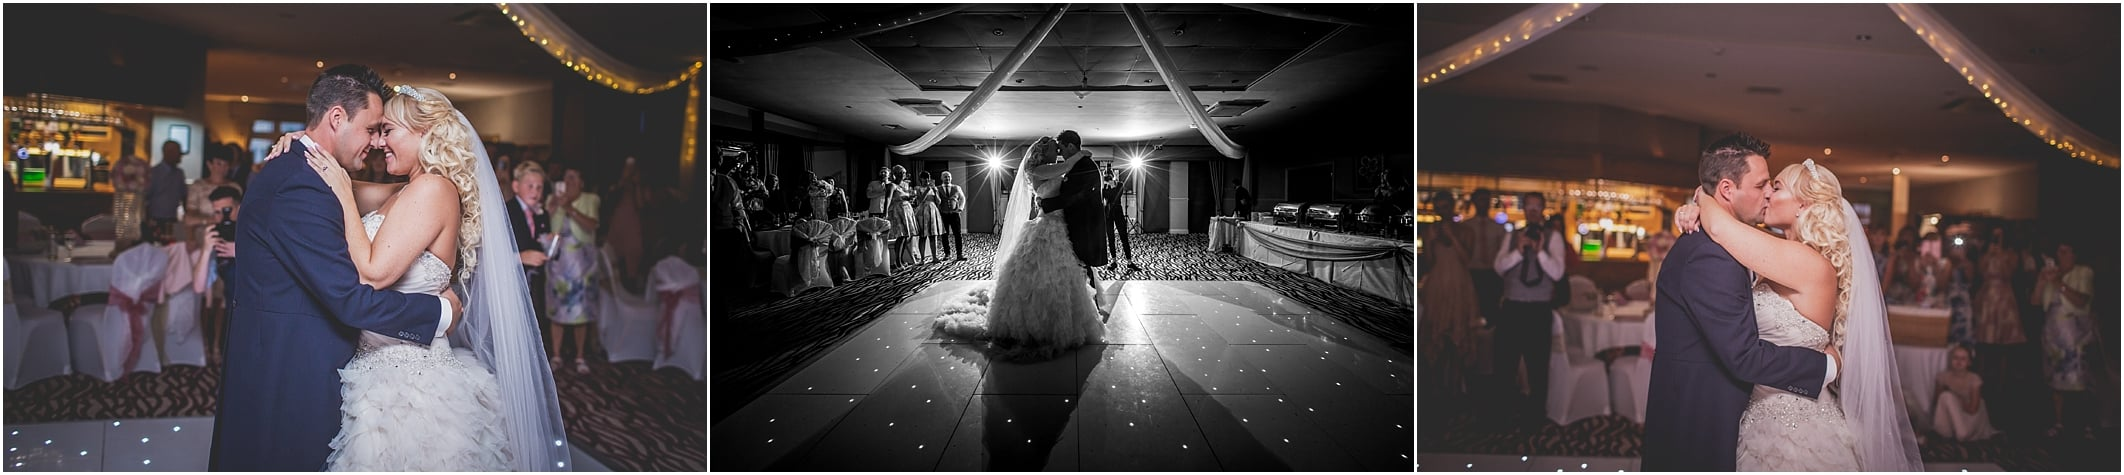 First-Dance-Wedding_images